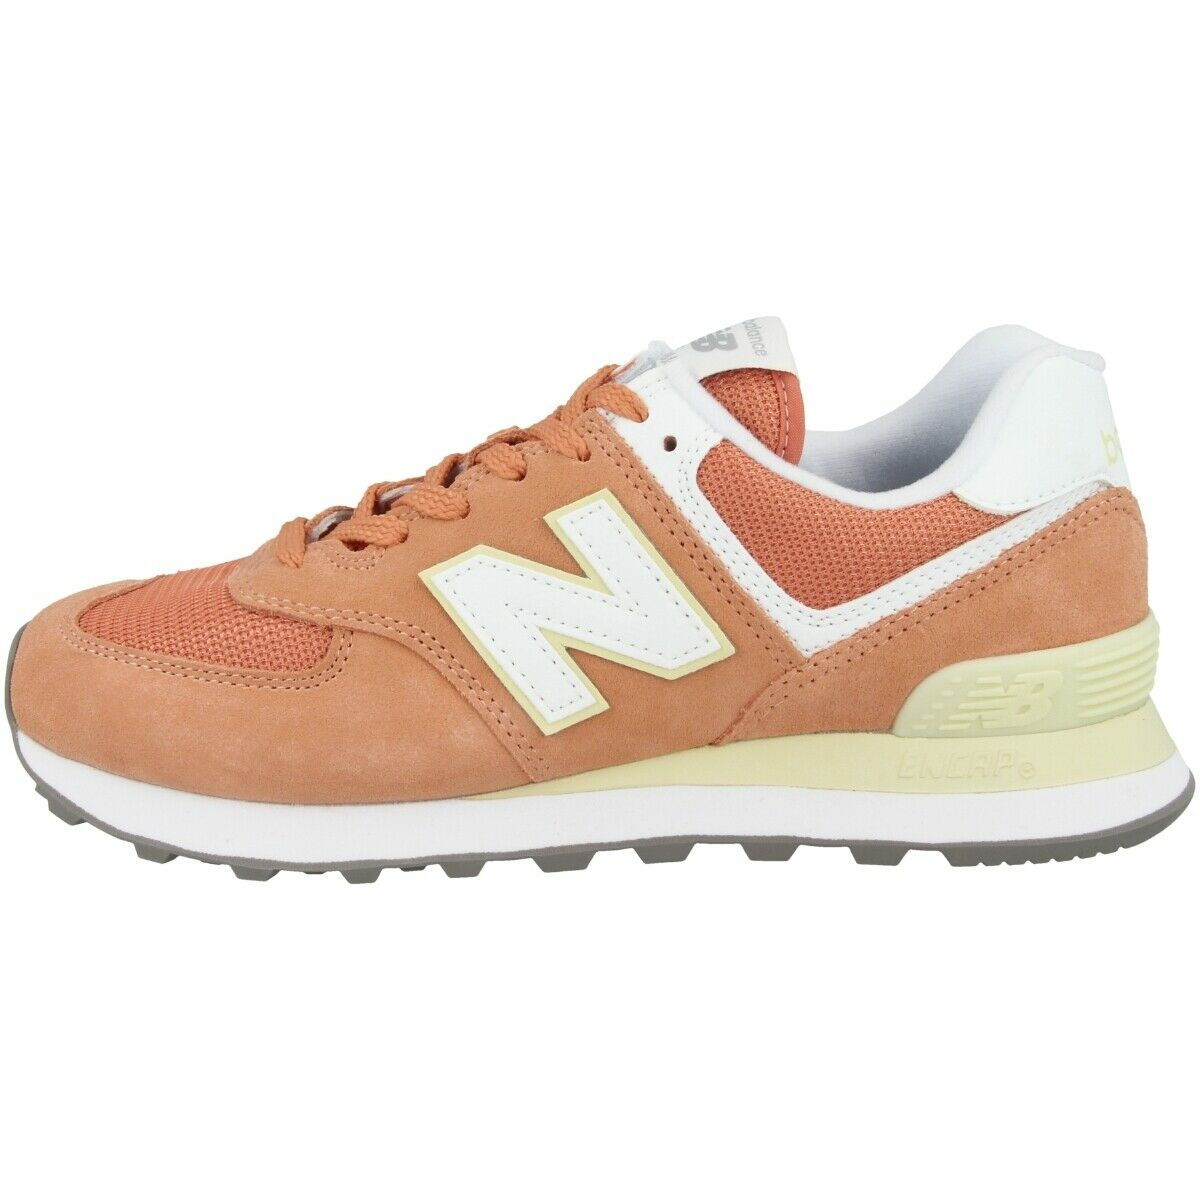 New Balance Wl574 Esf shoes da Ginnastica per il Tempo Libero Faded Rame